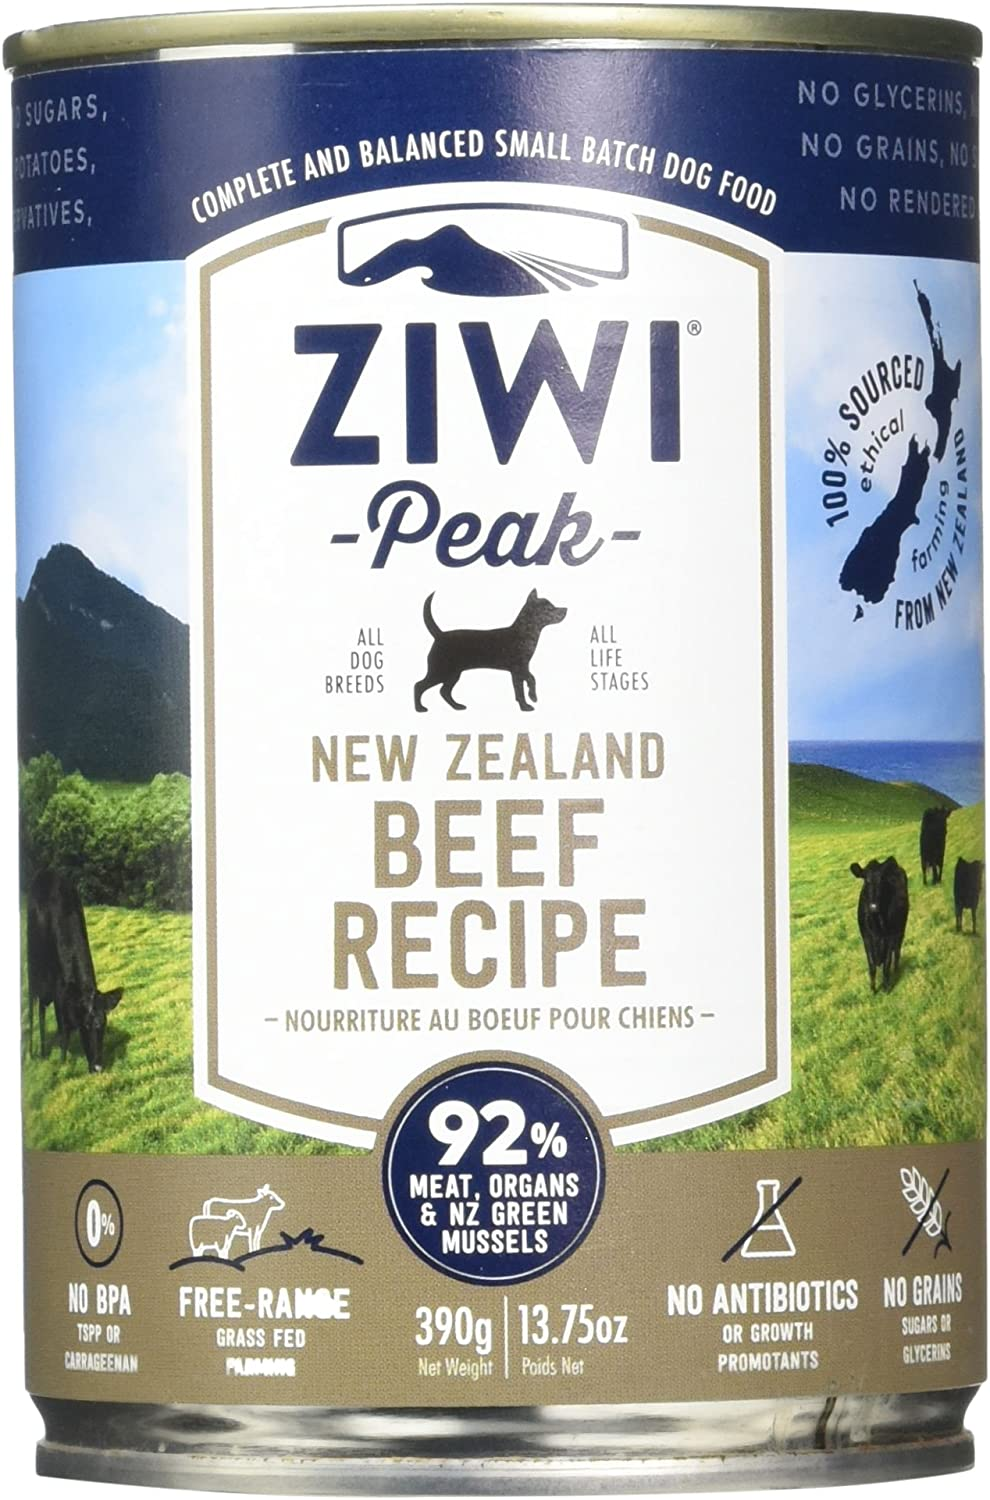 Ziwipeak Zpcdb0390C-Us Beef Cuisine Pet Food, 13.75 Oz